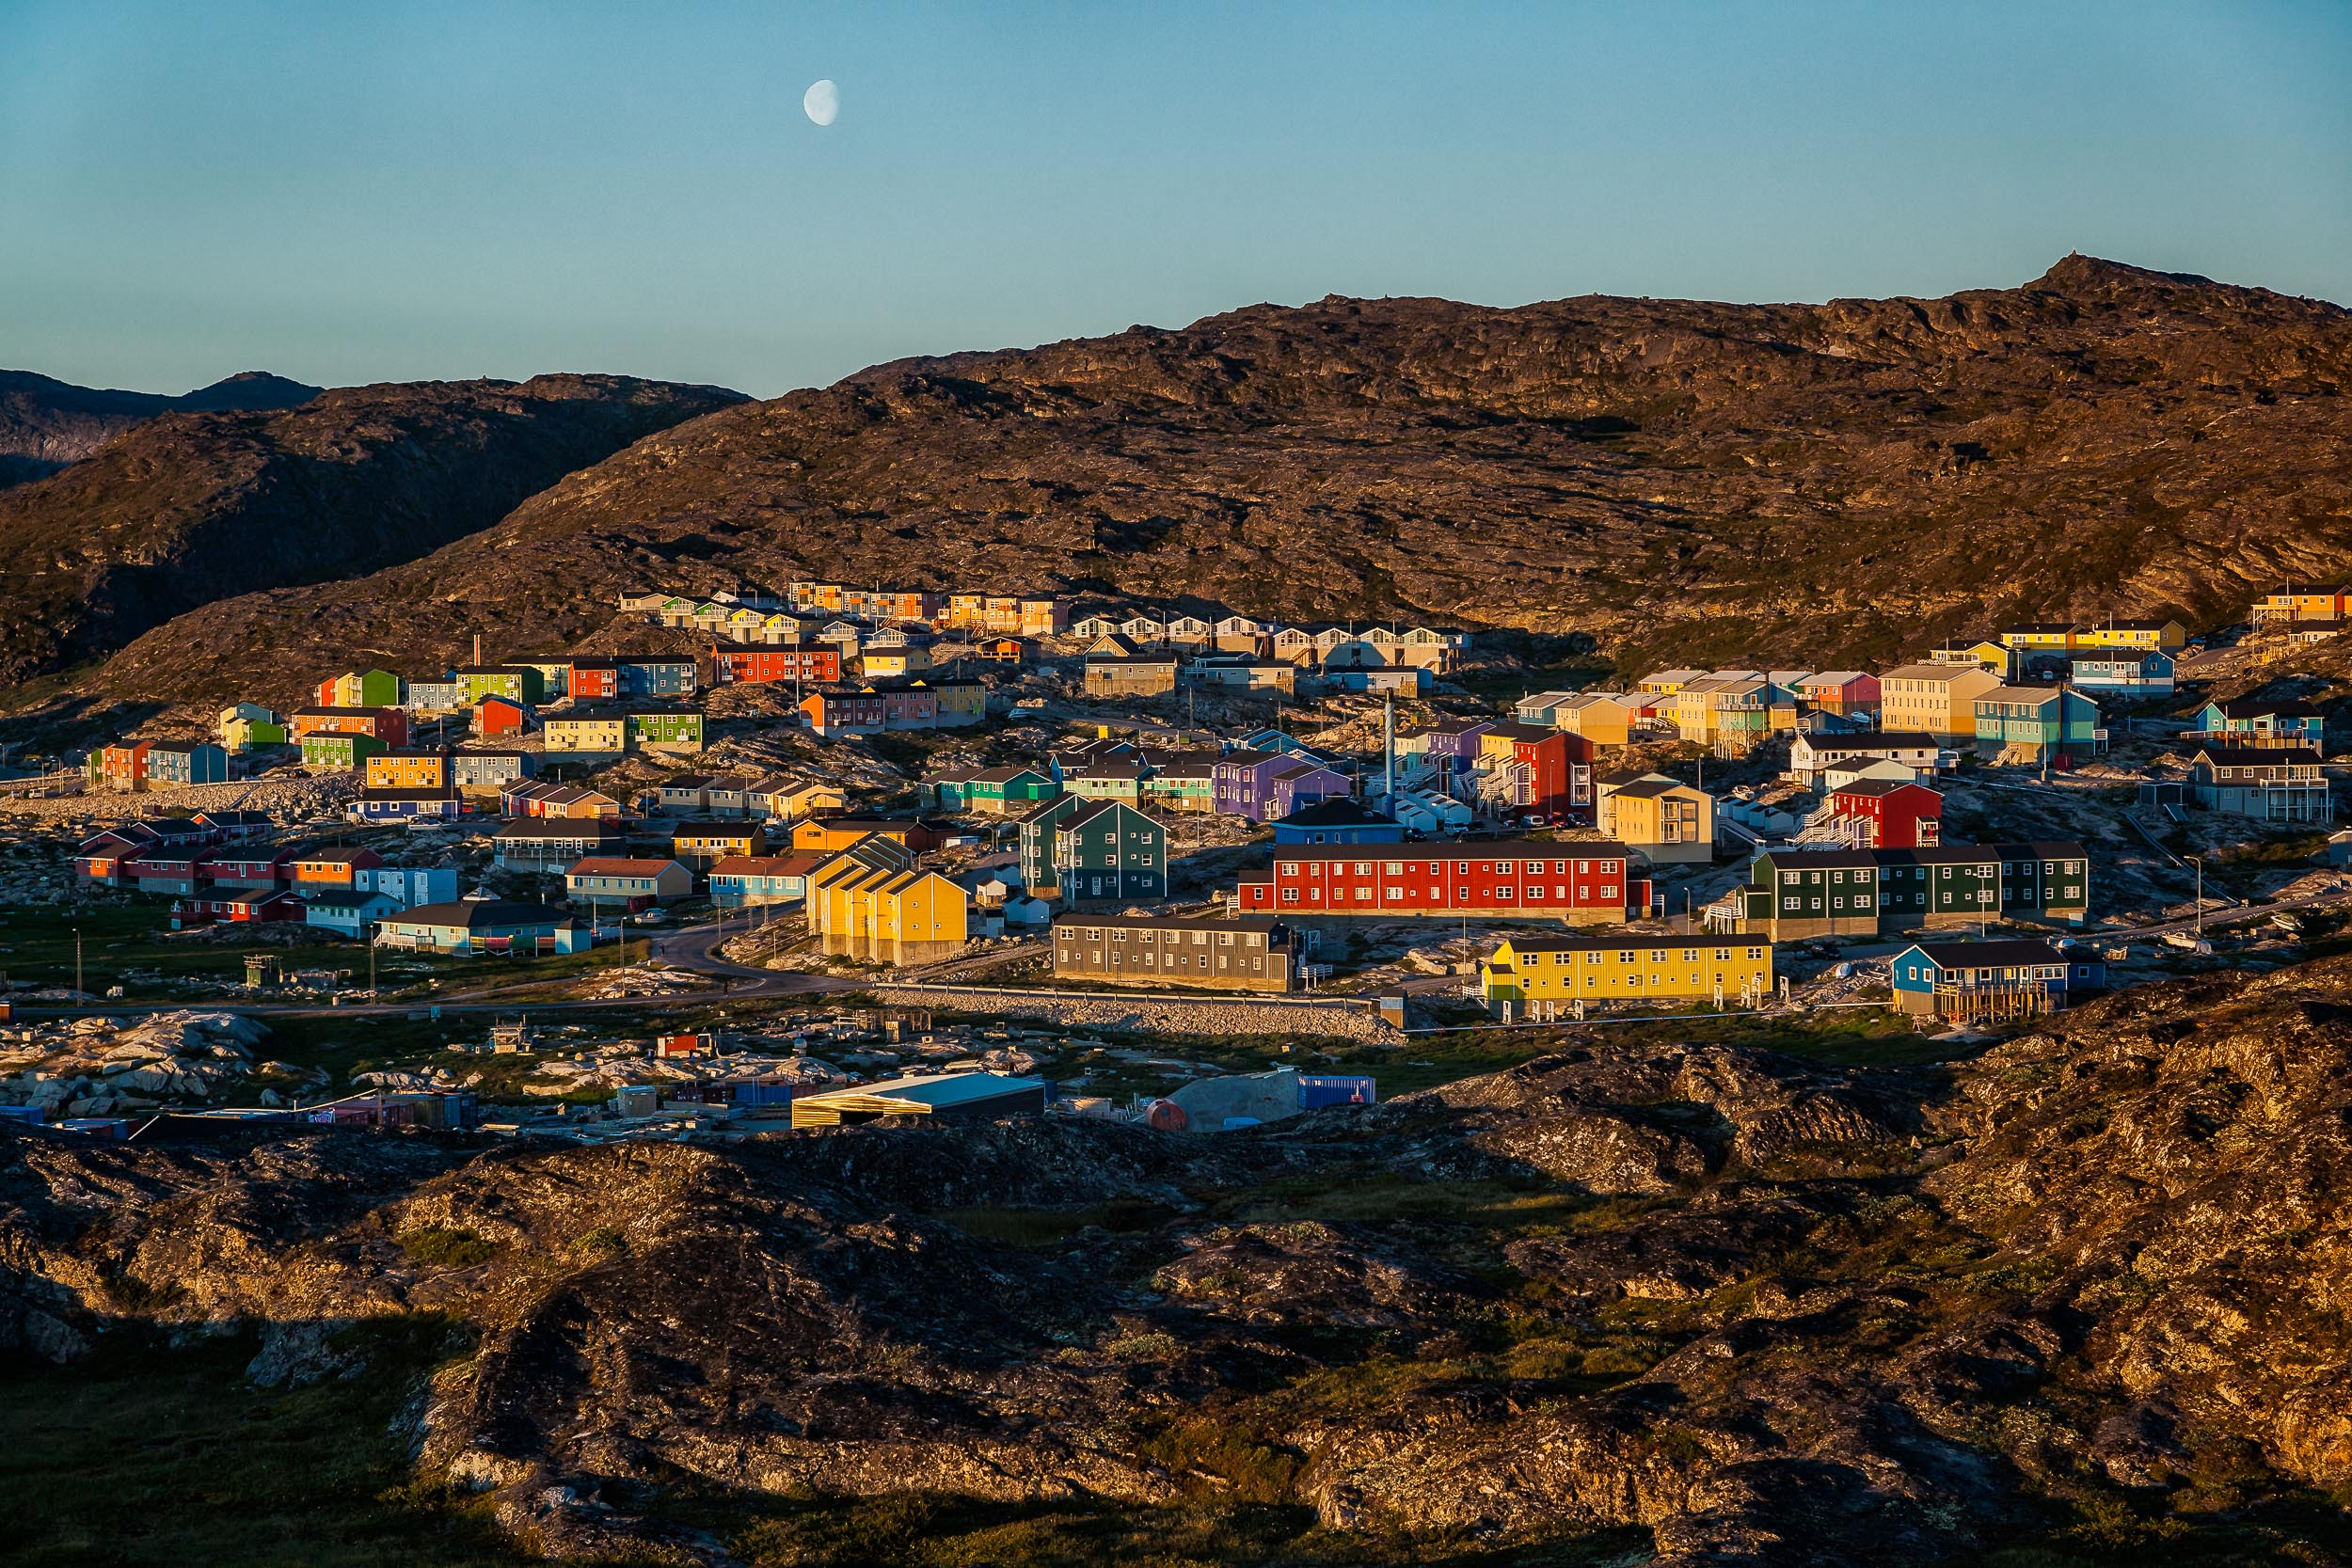 A sweeping view of    housing    in the city of    Ilulissat, Greenland